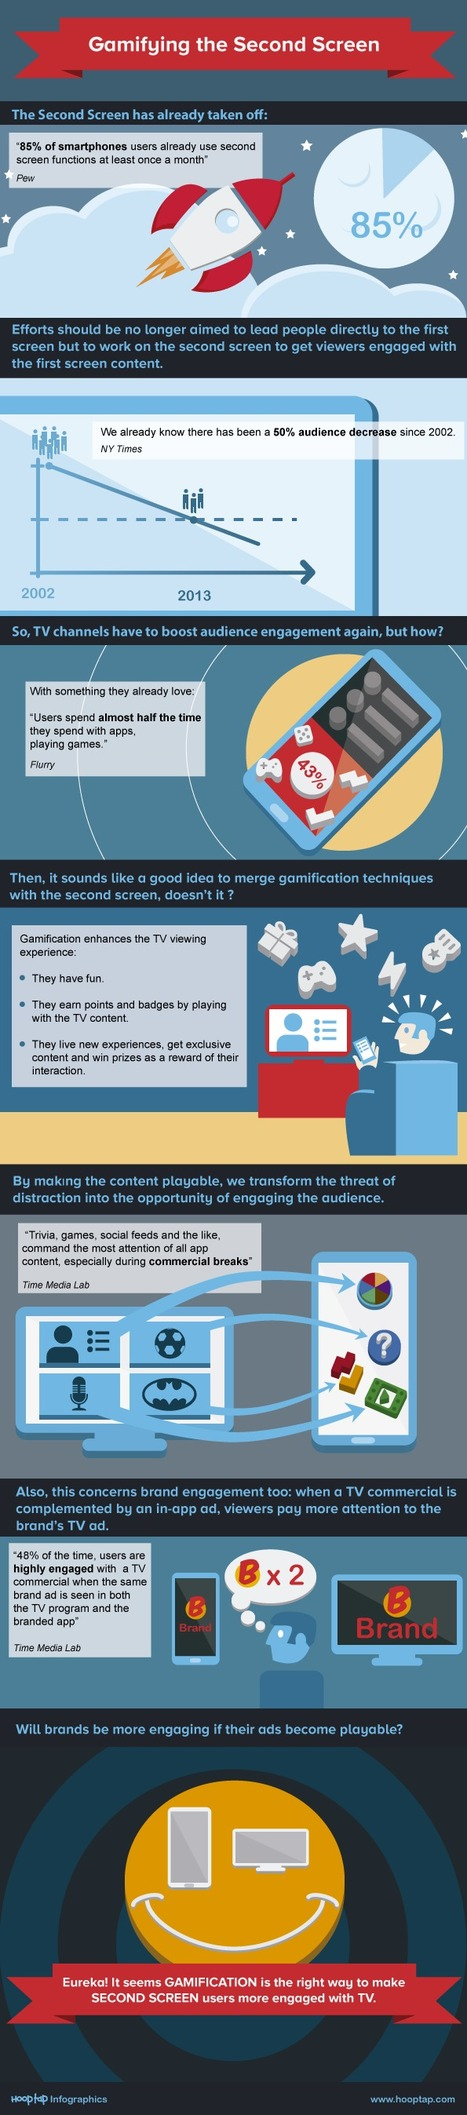 Gamification Will Strengthen the Second Screen #infographic   Hooptap Blog   Scoop.it